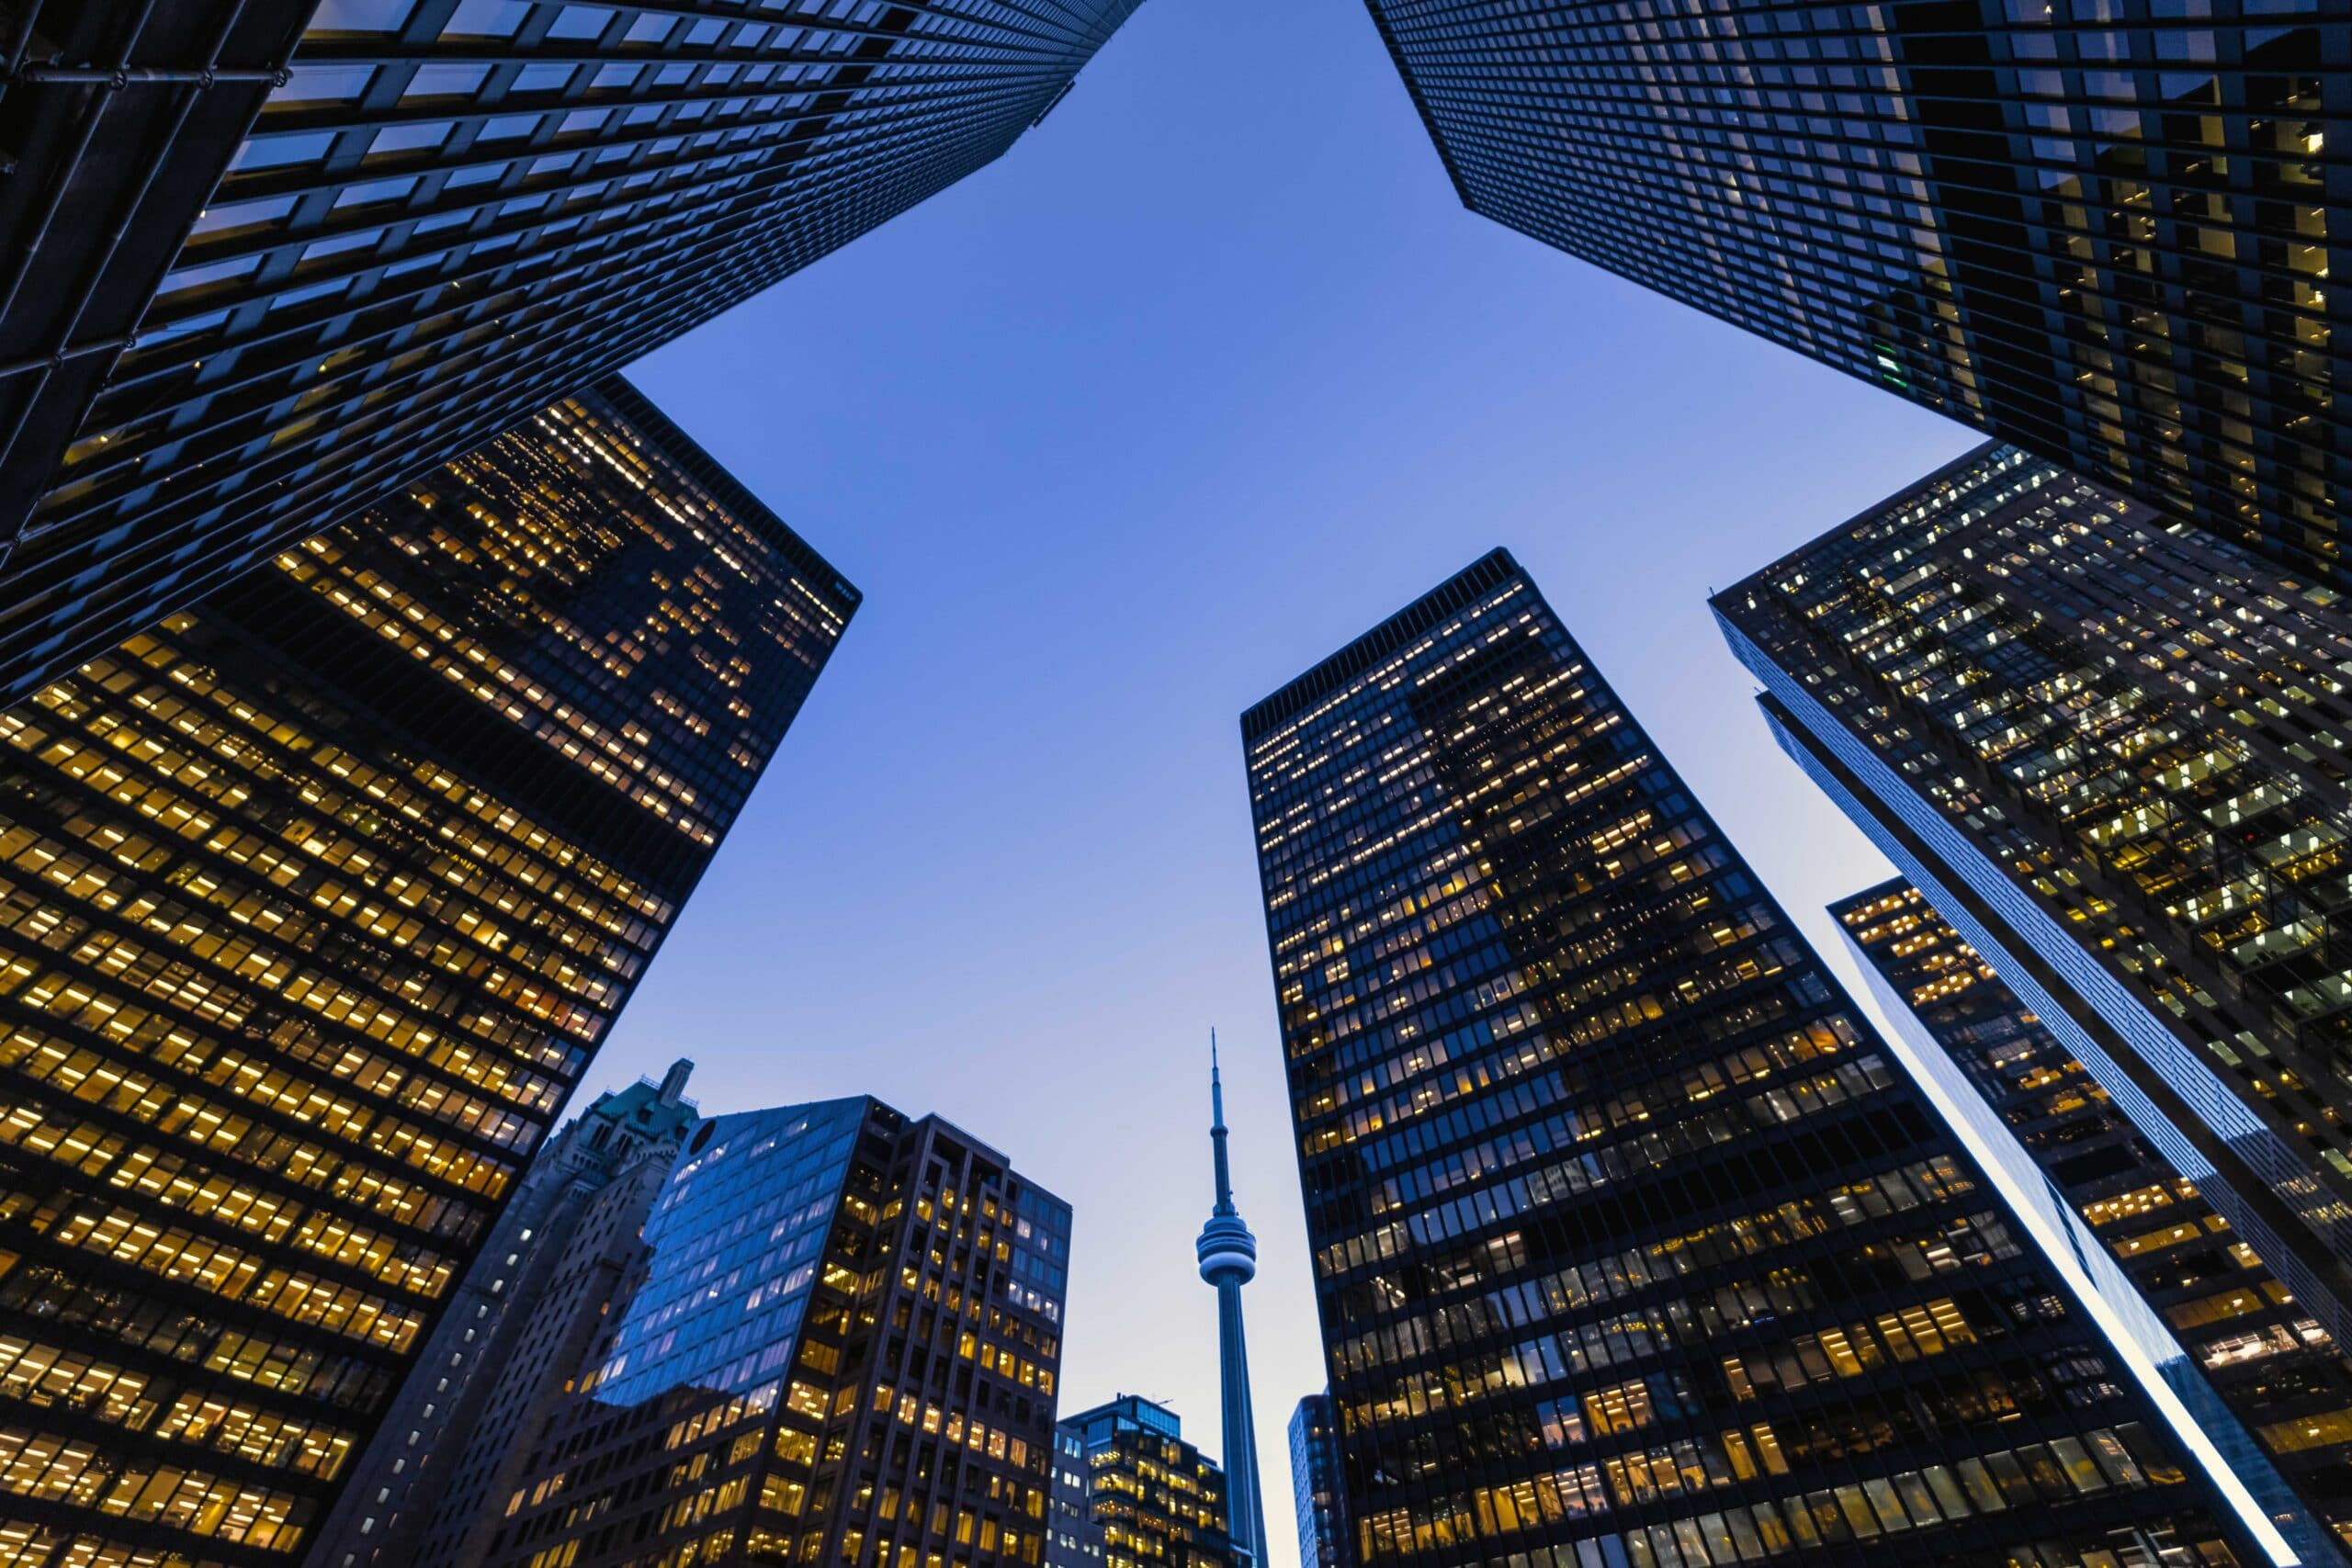 Business district architecture at night in downtown Toronto. Featuring a blue sky and lots of building lights with the famous CN Tower in the background.